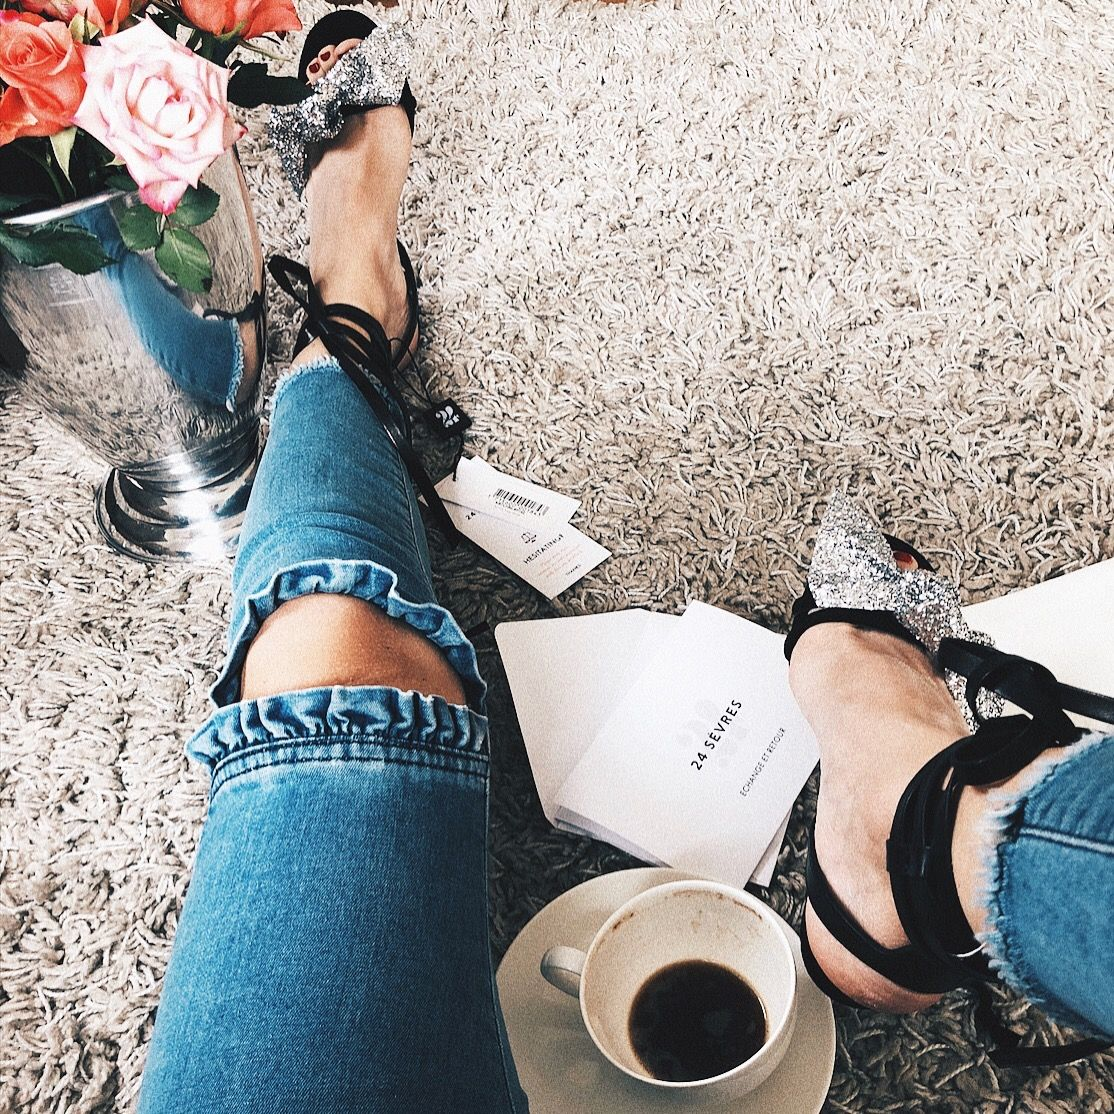 Pin by Kthrine Geldres on Fashion   Fashion, Shoes, Sandals